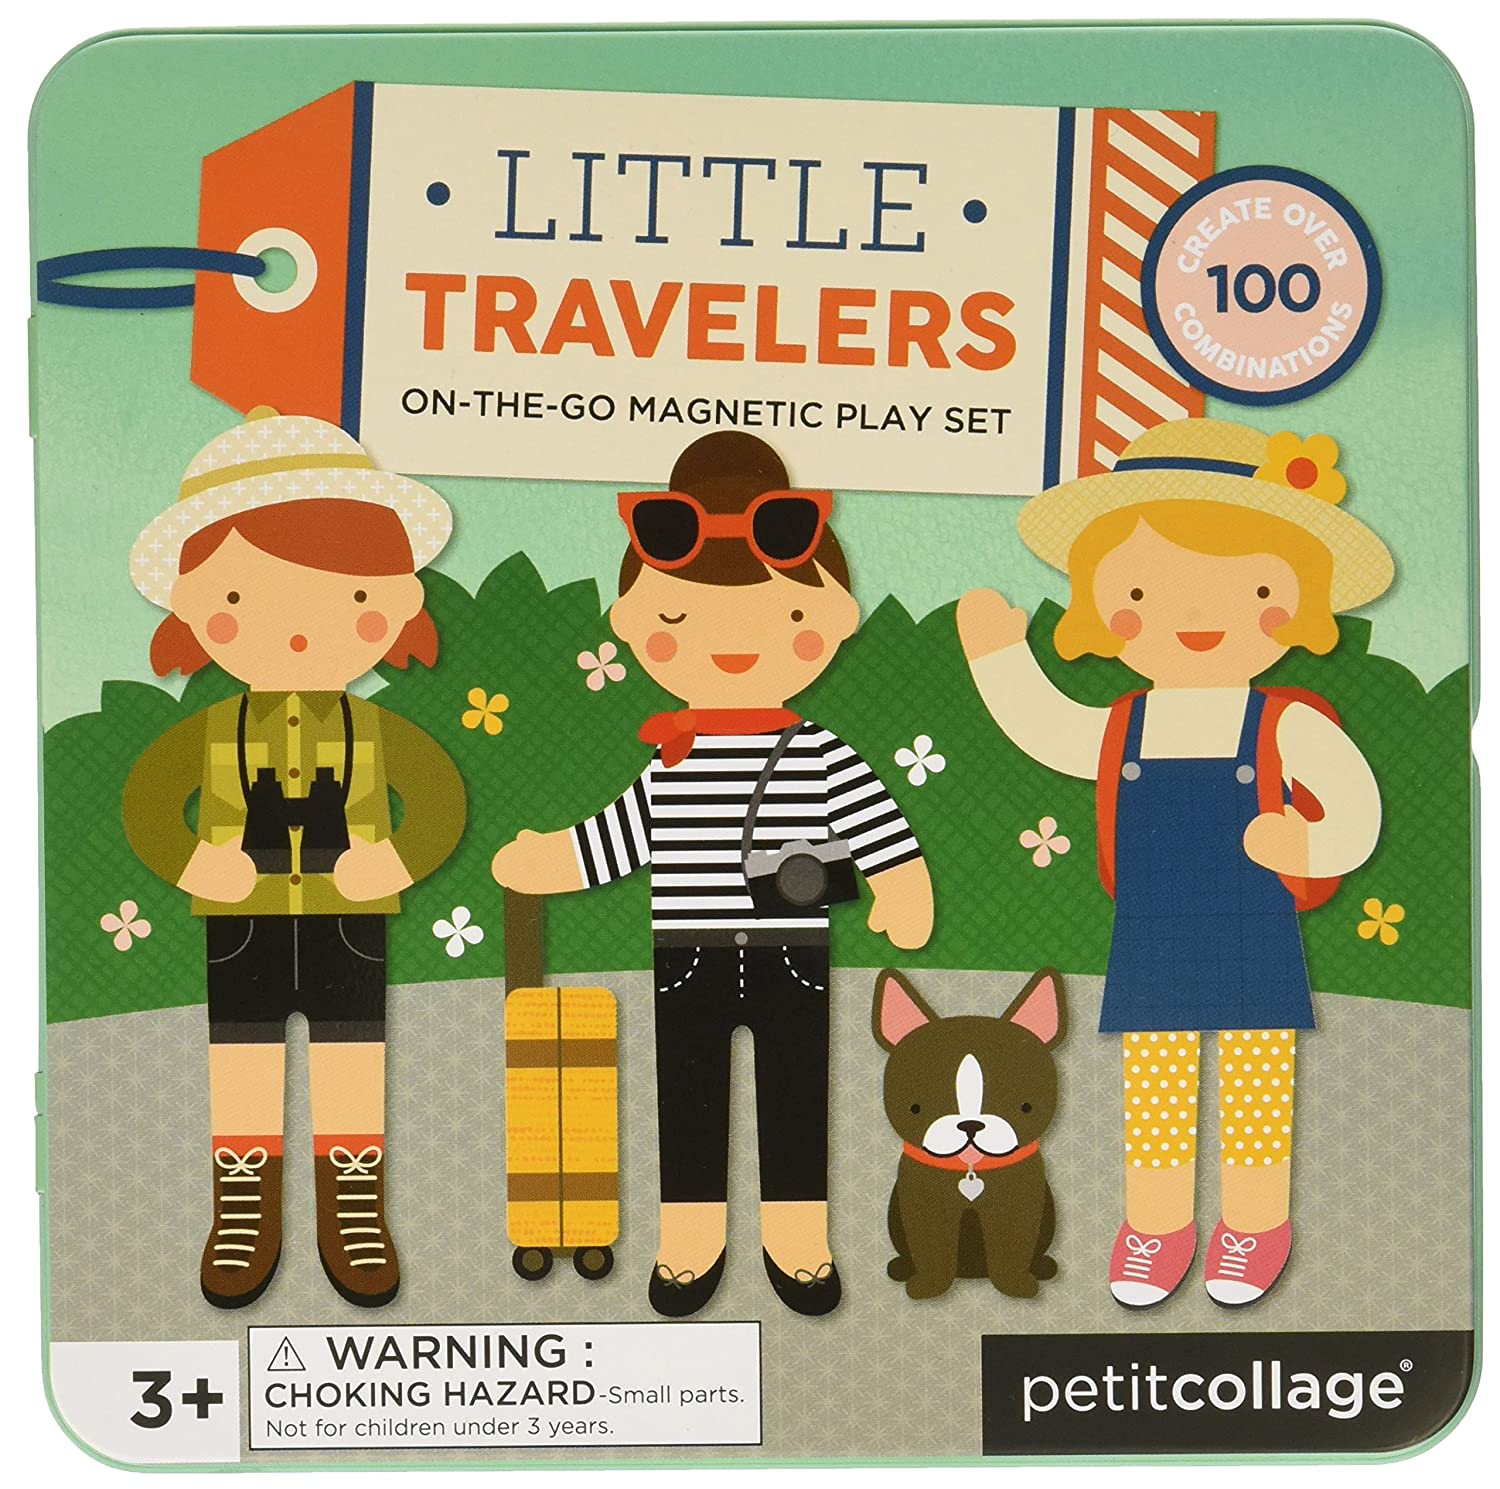 Petit Collage |Magnets | Game On The Go Girl Wild & Wolf Ltd. PTC226